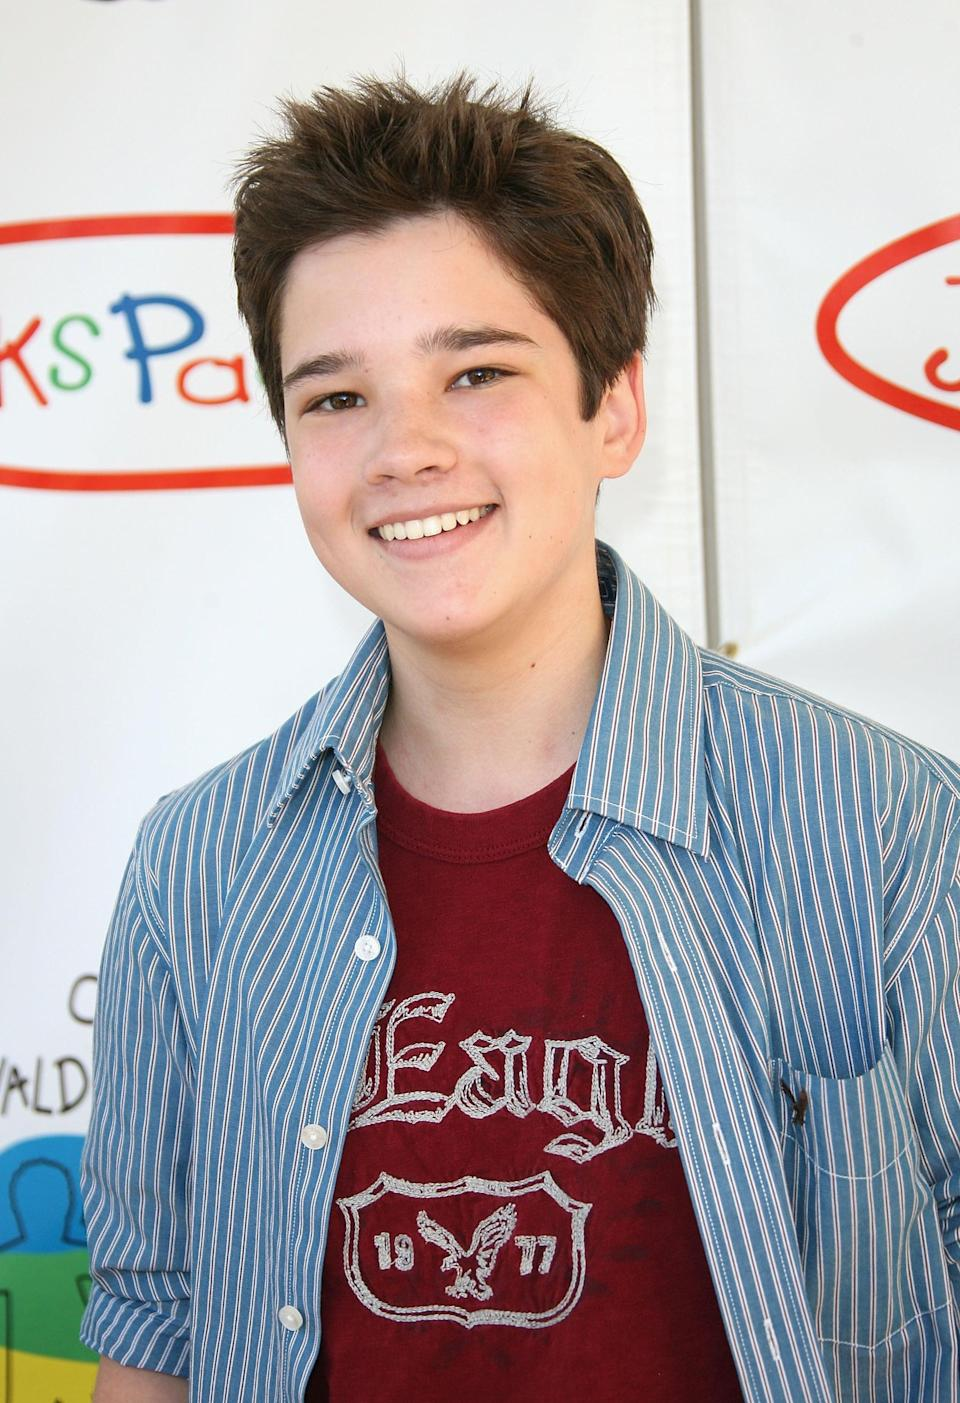 <p>Nathan Kress was 14 years old when <strong>iCarly</strong> debuted on television, making him roughly six months older than his costar Miranda Cosgrove. His role as Freddie Benson was the actor's first major television gig, though he did play an extra in one episode of <strong>Drake &amp; Josh</strong> in 2007.</p>